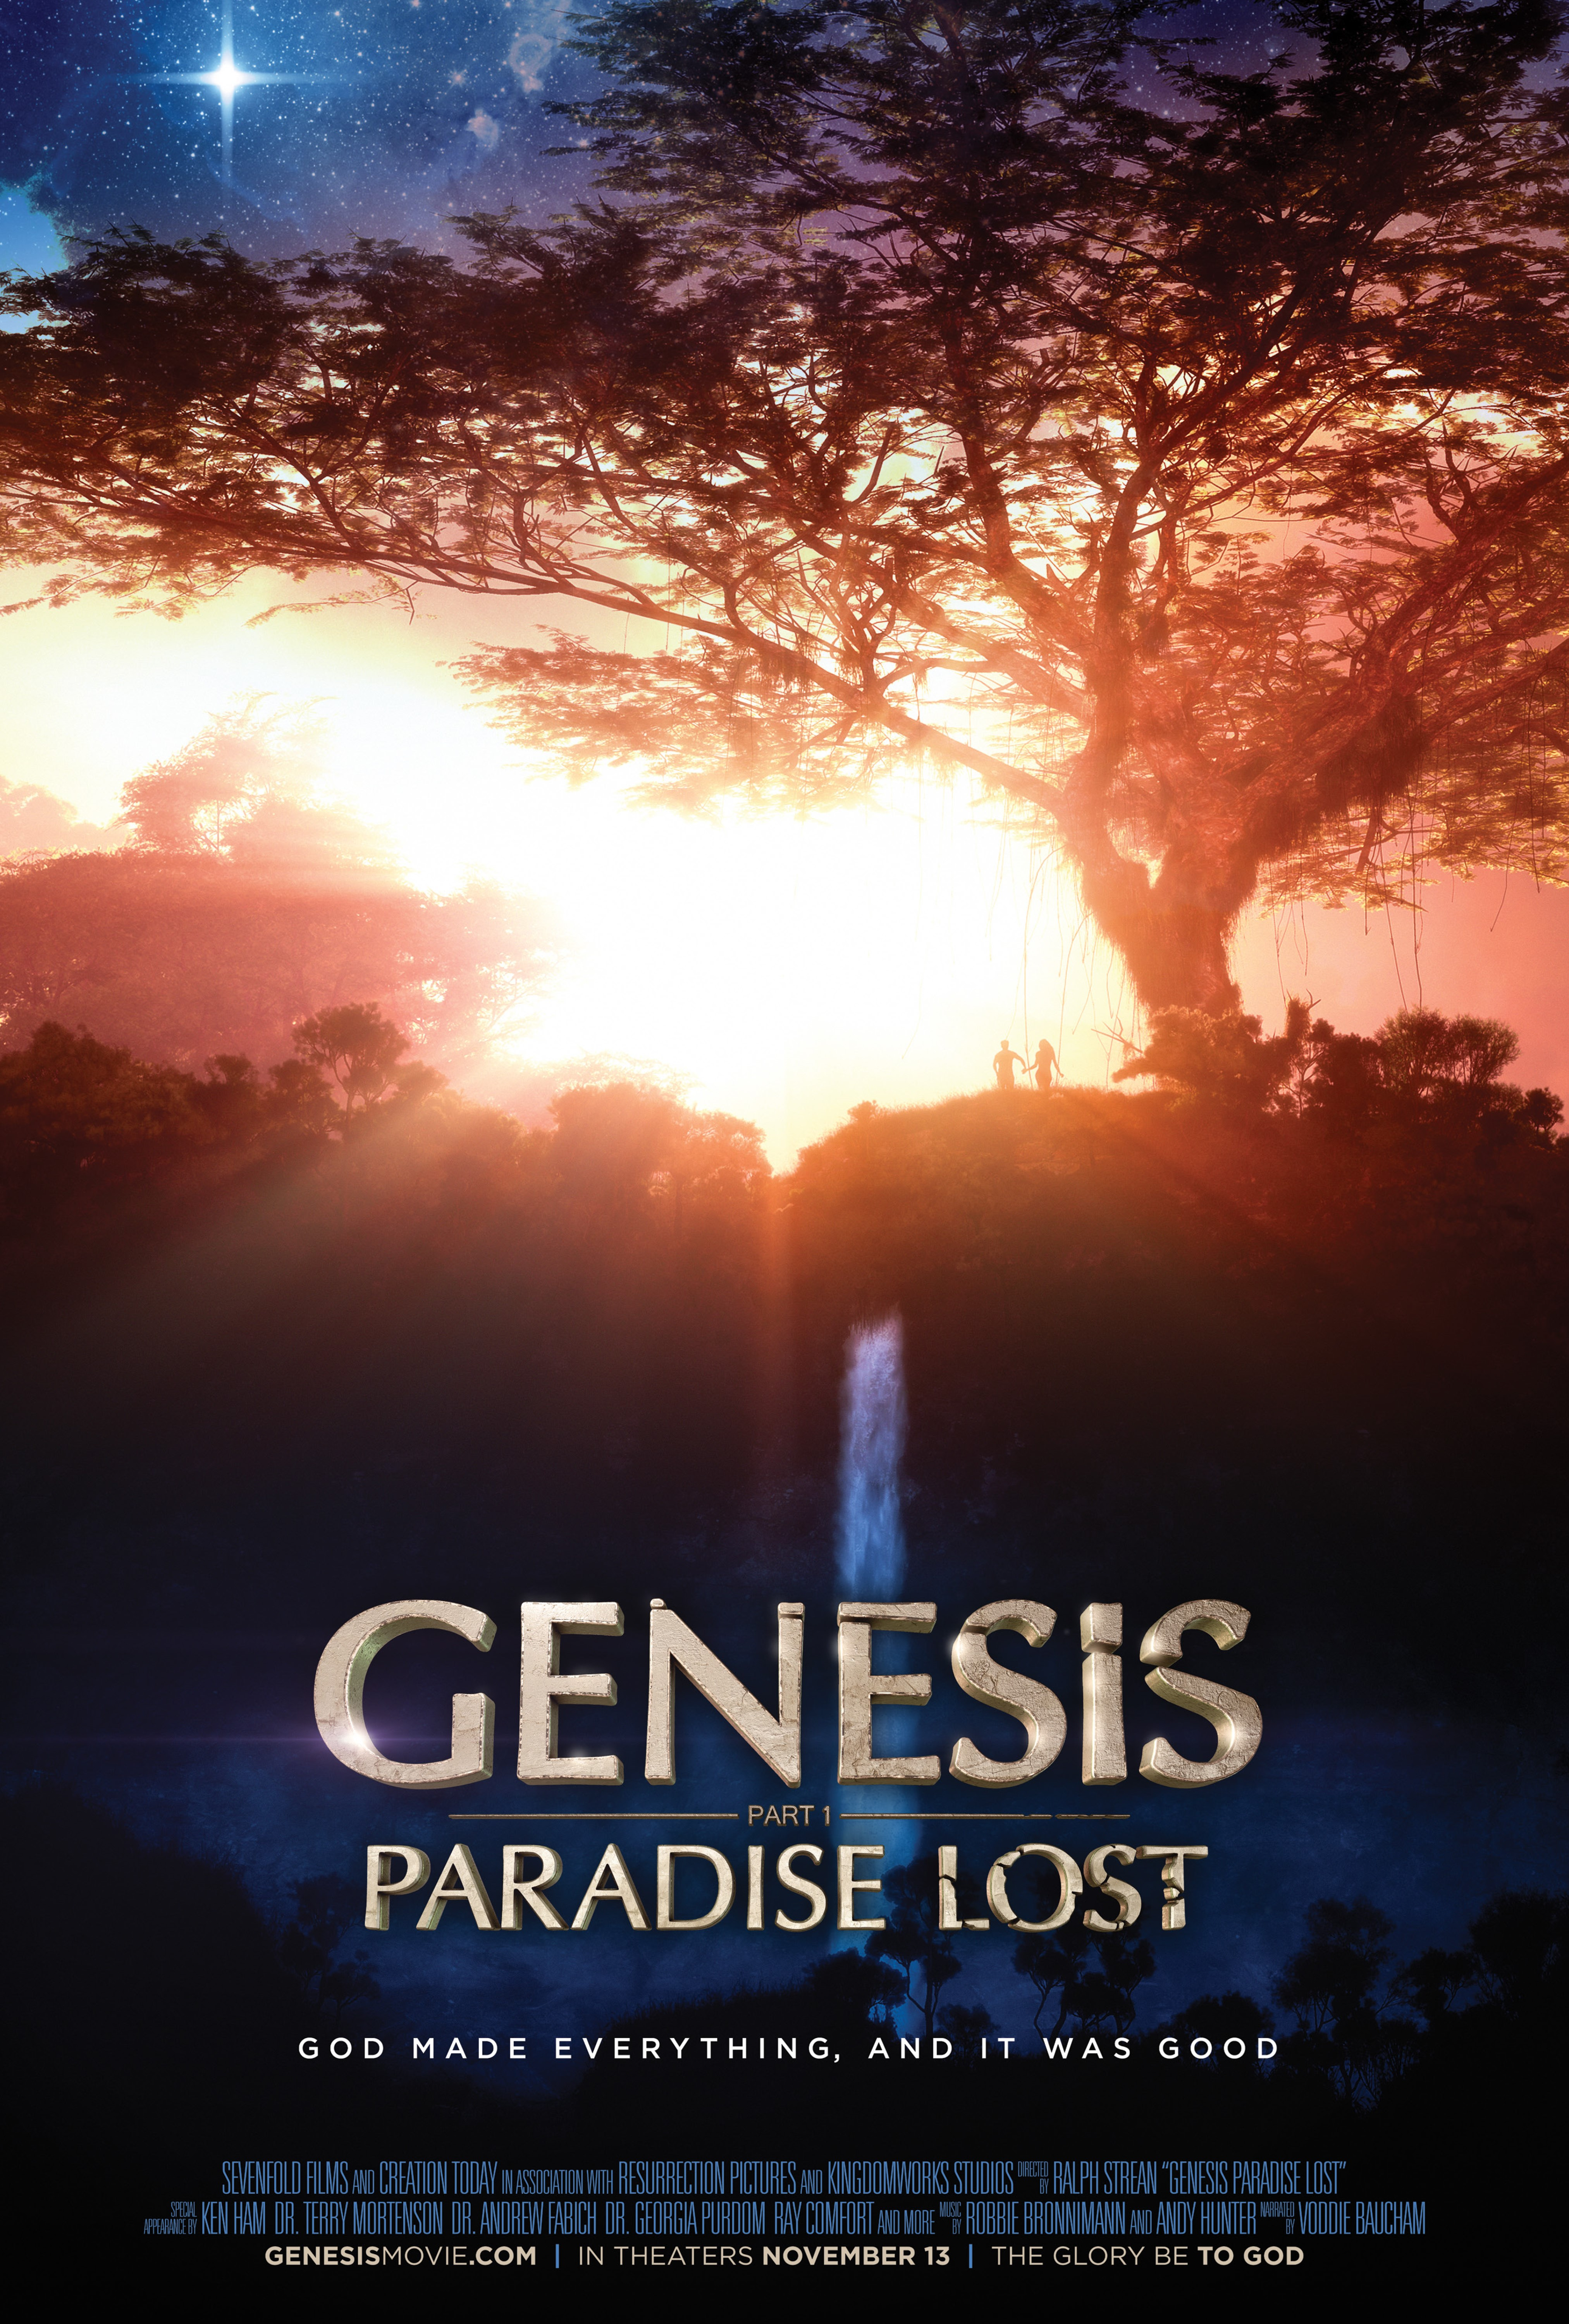 'Genesis: Paradise Lost' takes viewers on 3-D ride through creationism